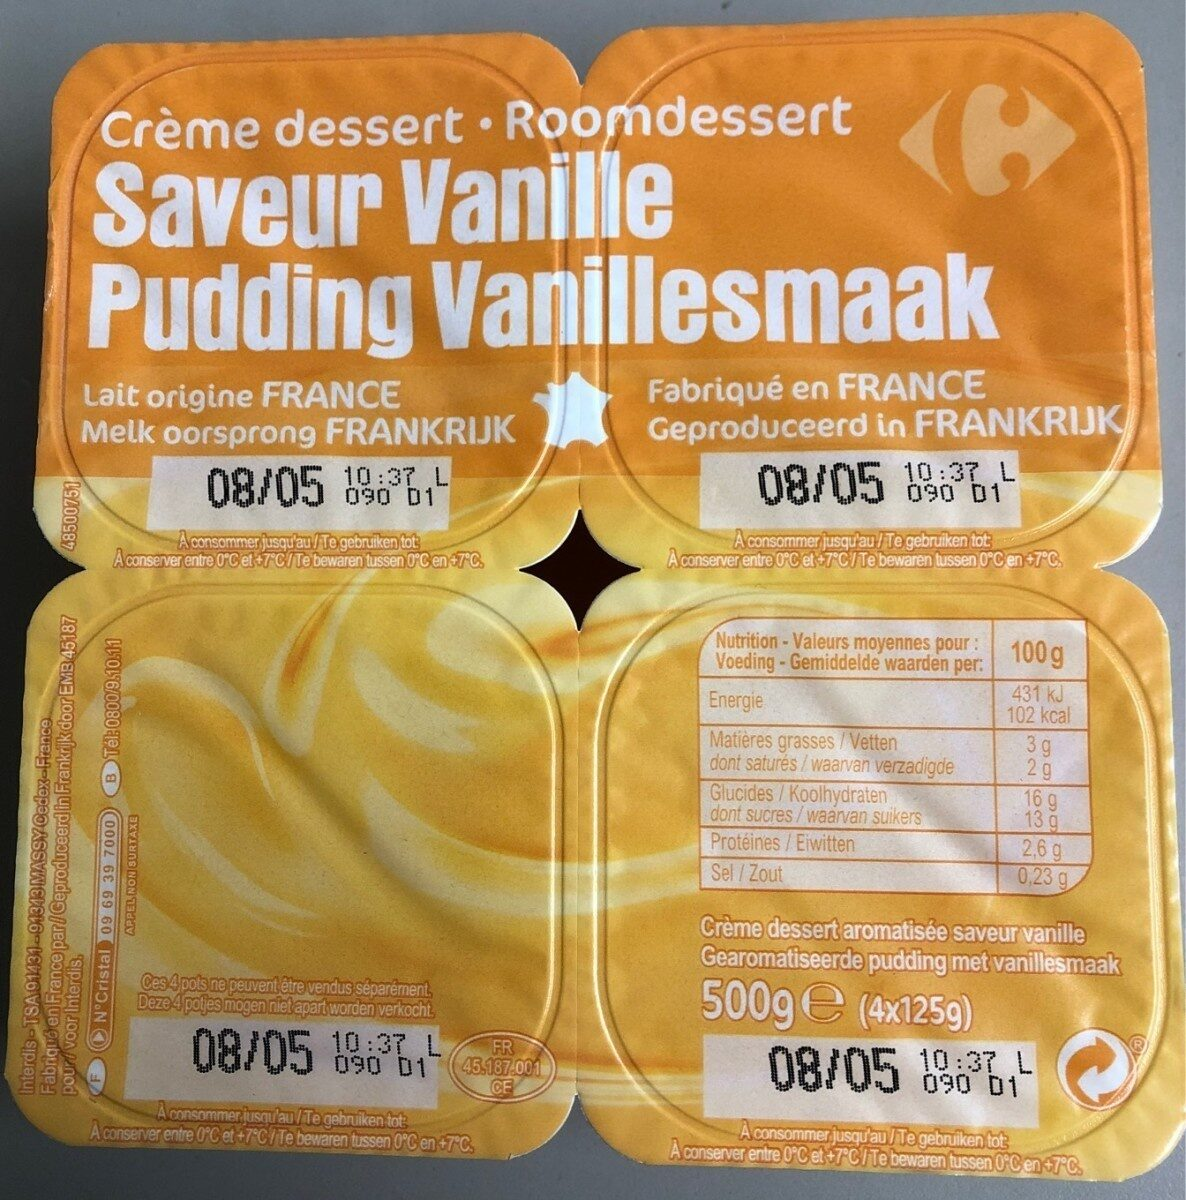 Pudding Vanillesmaak - Product - fr